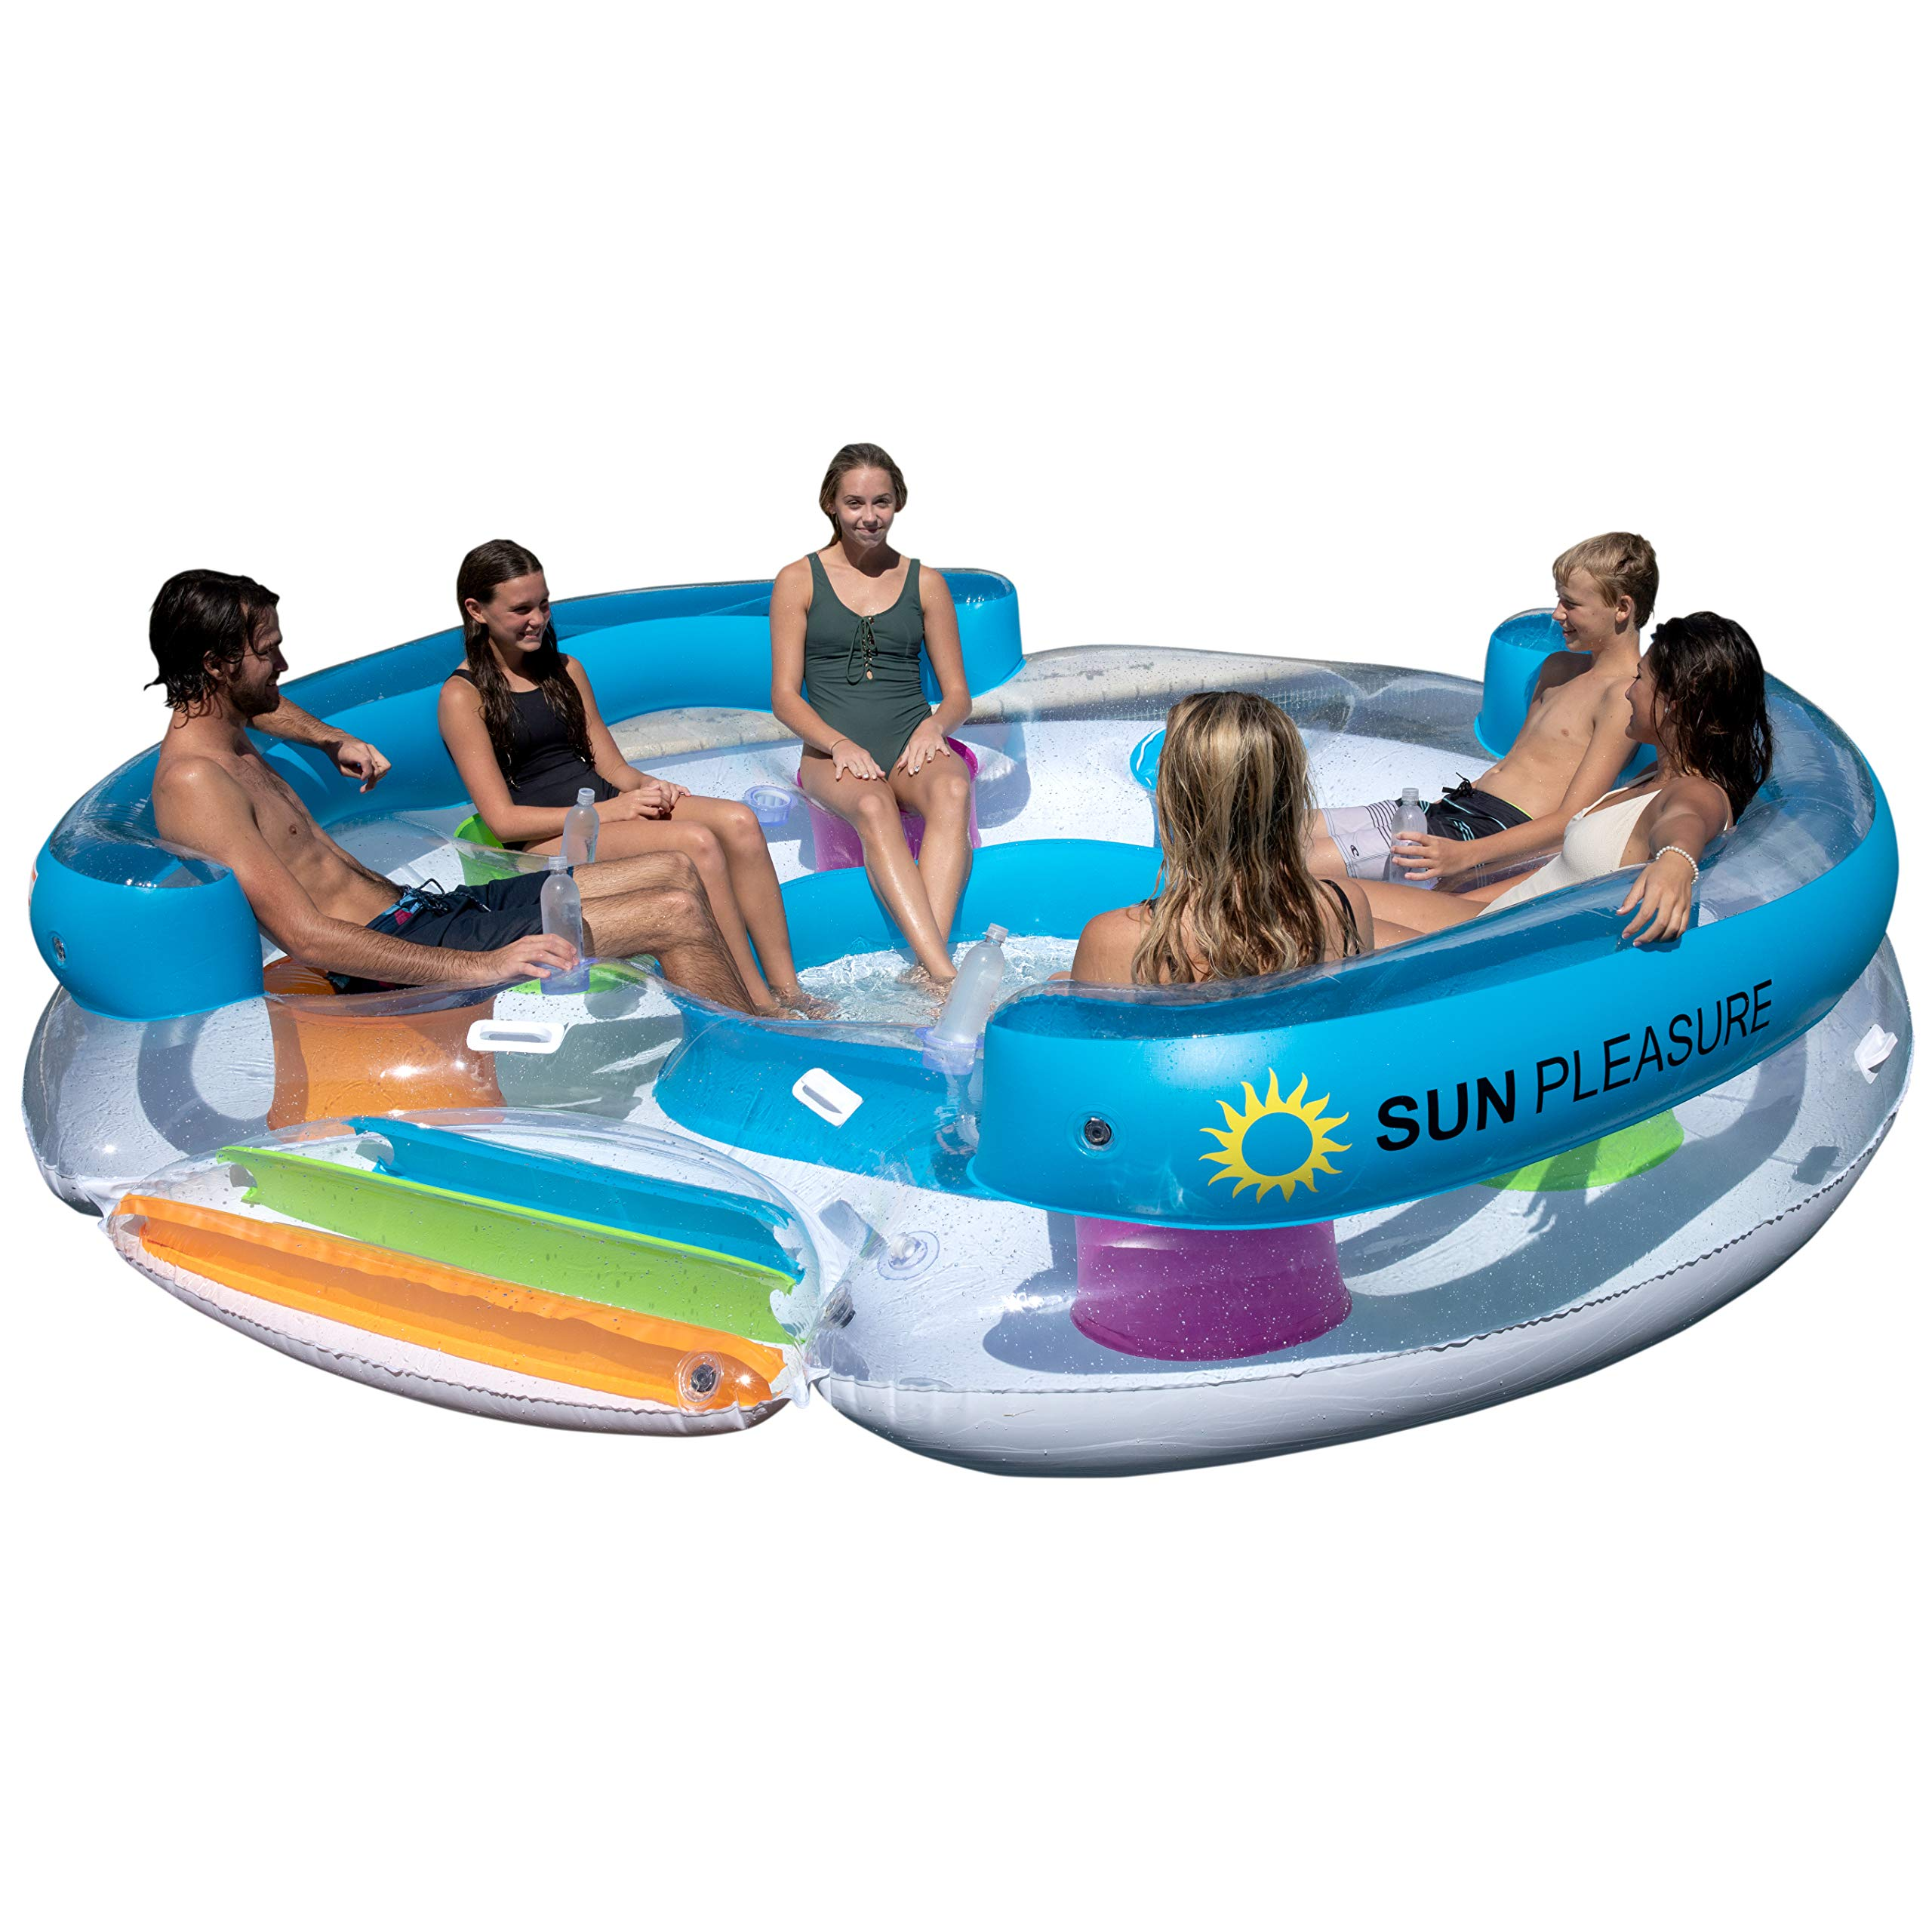 Sun Pleasure Tropical Tahiti Floating Island, Giant Float and Carrying Bag - use in Lake, Ocean, River, Pool Floats for up to 6 People Pump Not Included by Sun Pleasure